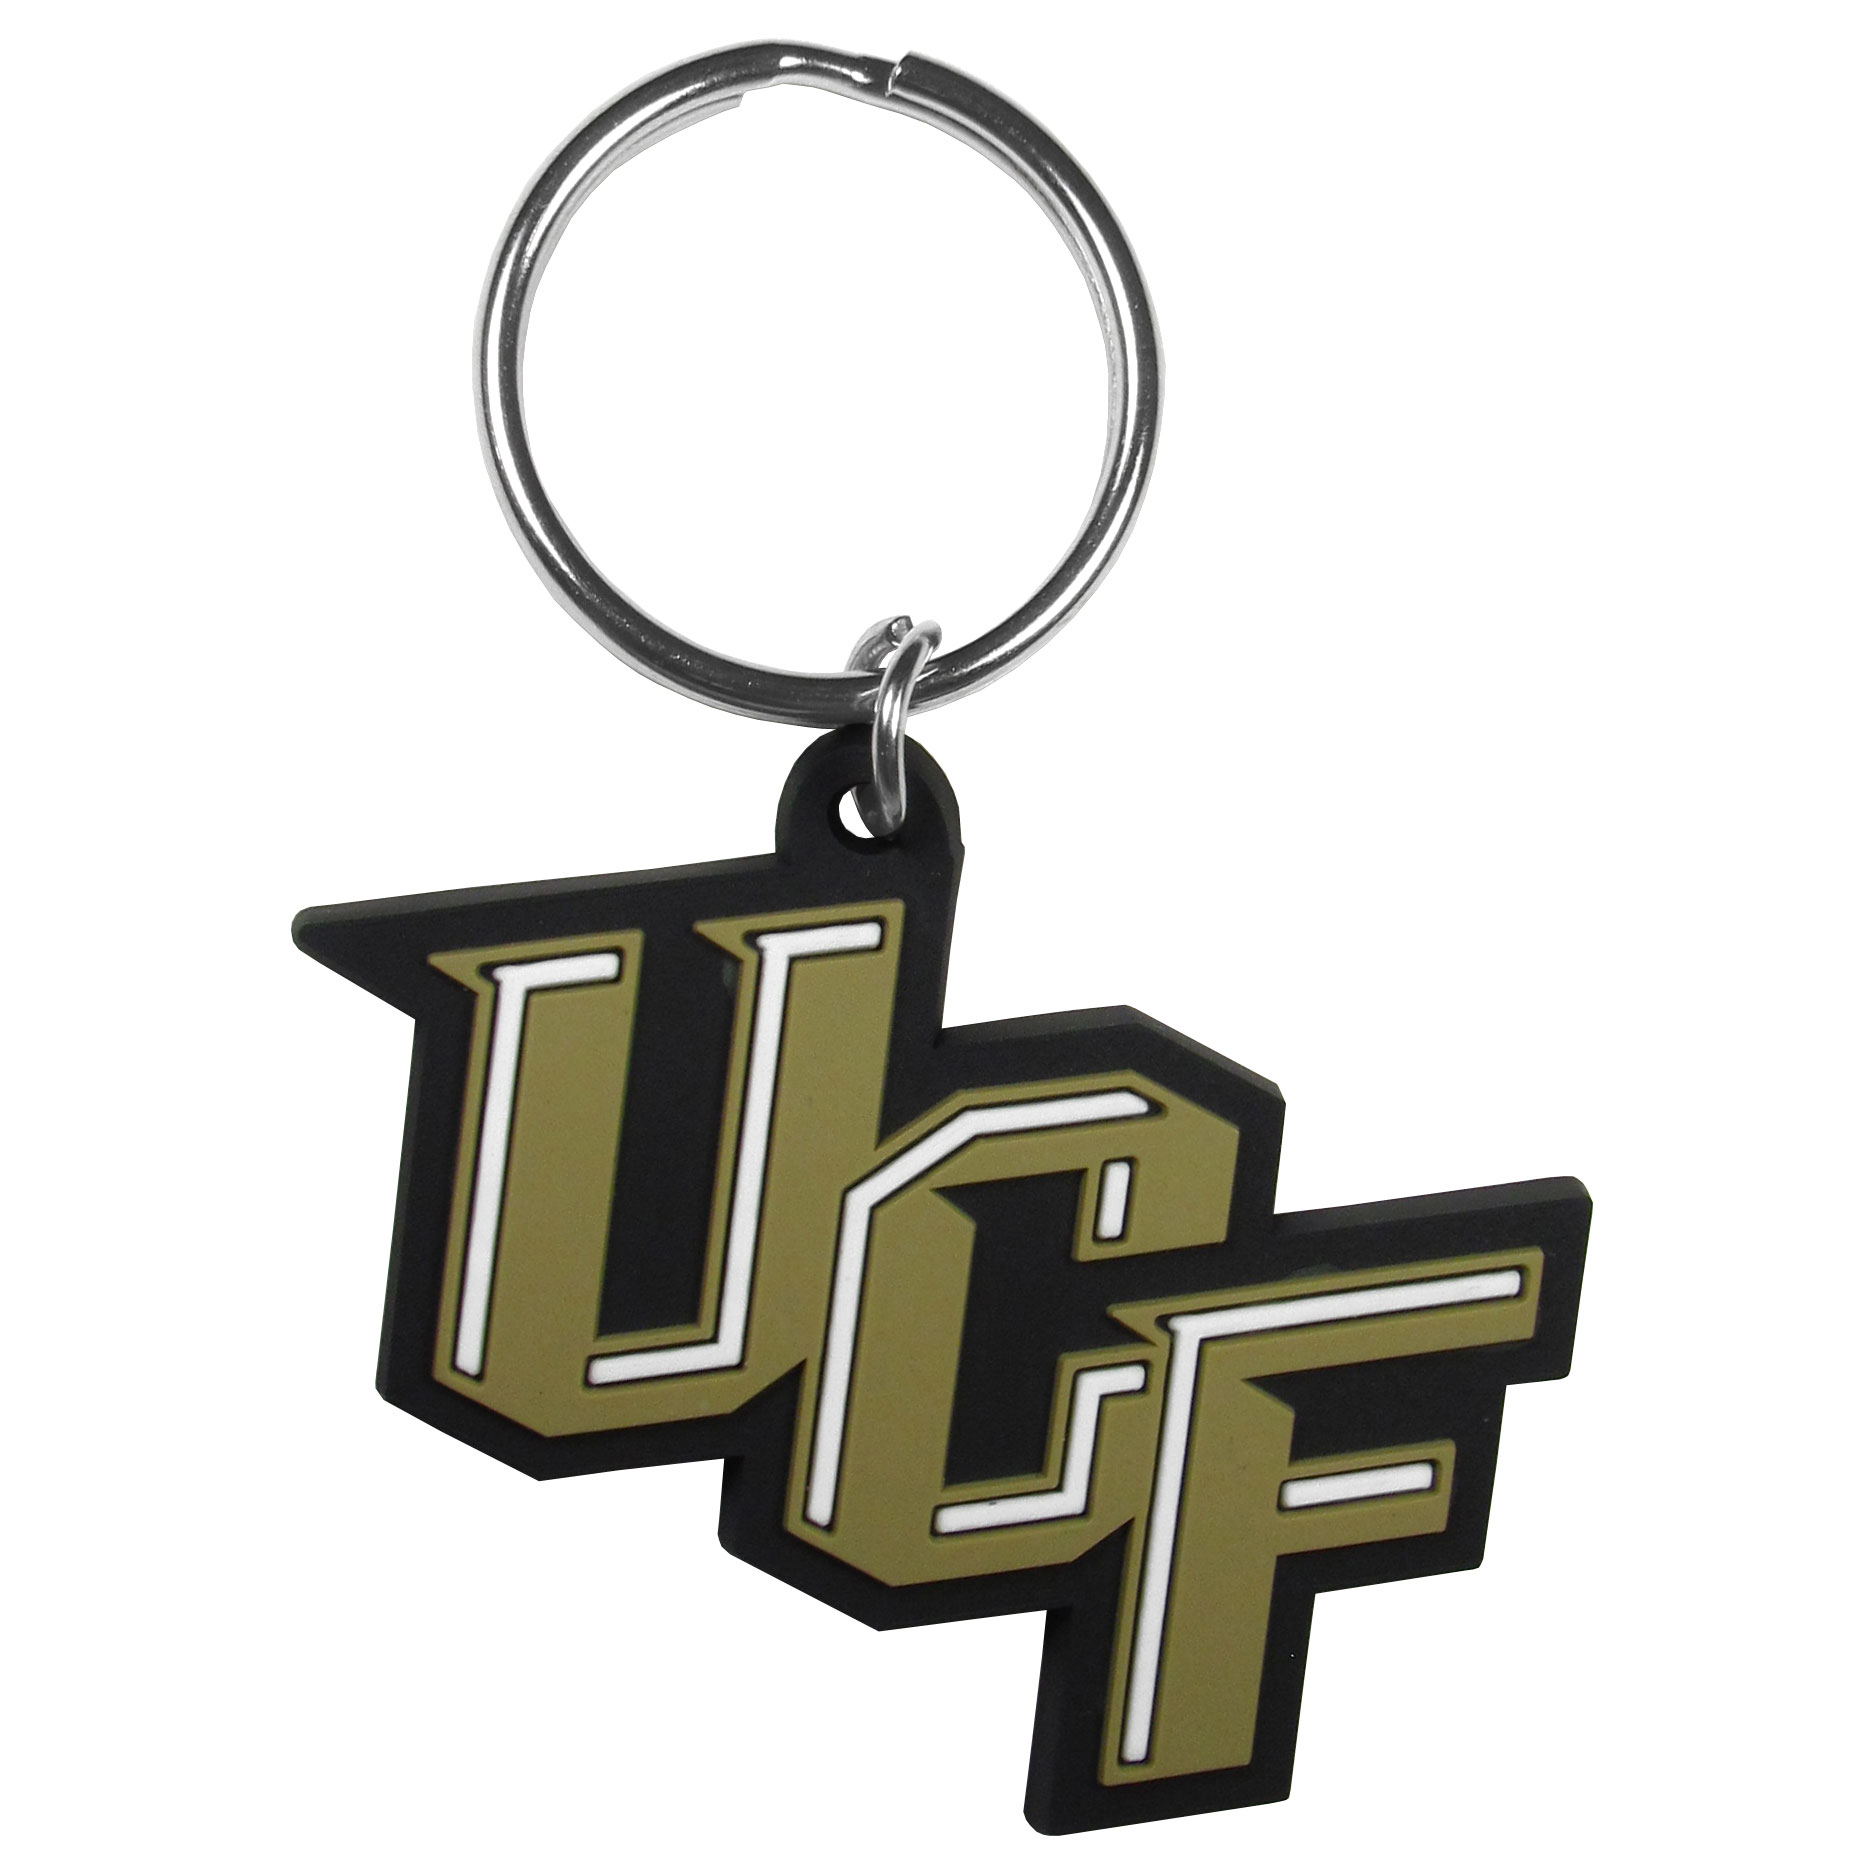 Central Florida Knights Flex Key Chain - Our fun, flexible Central Florida Knights key chains are made of a rubbery material that is layered to create a bright, textured logo.